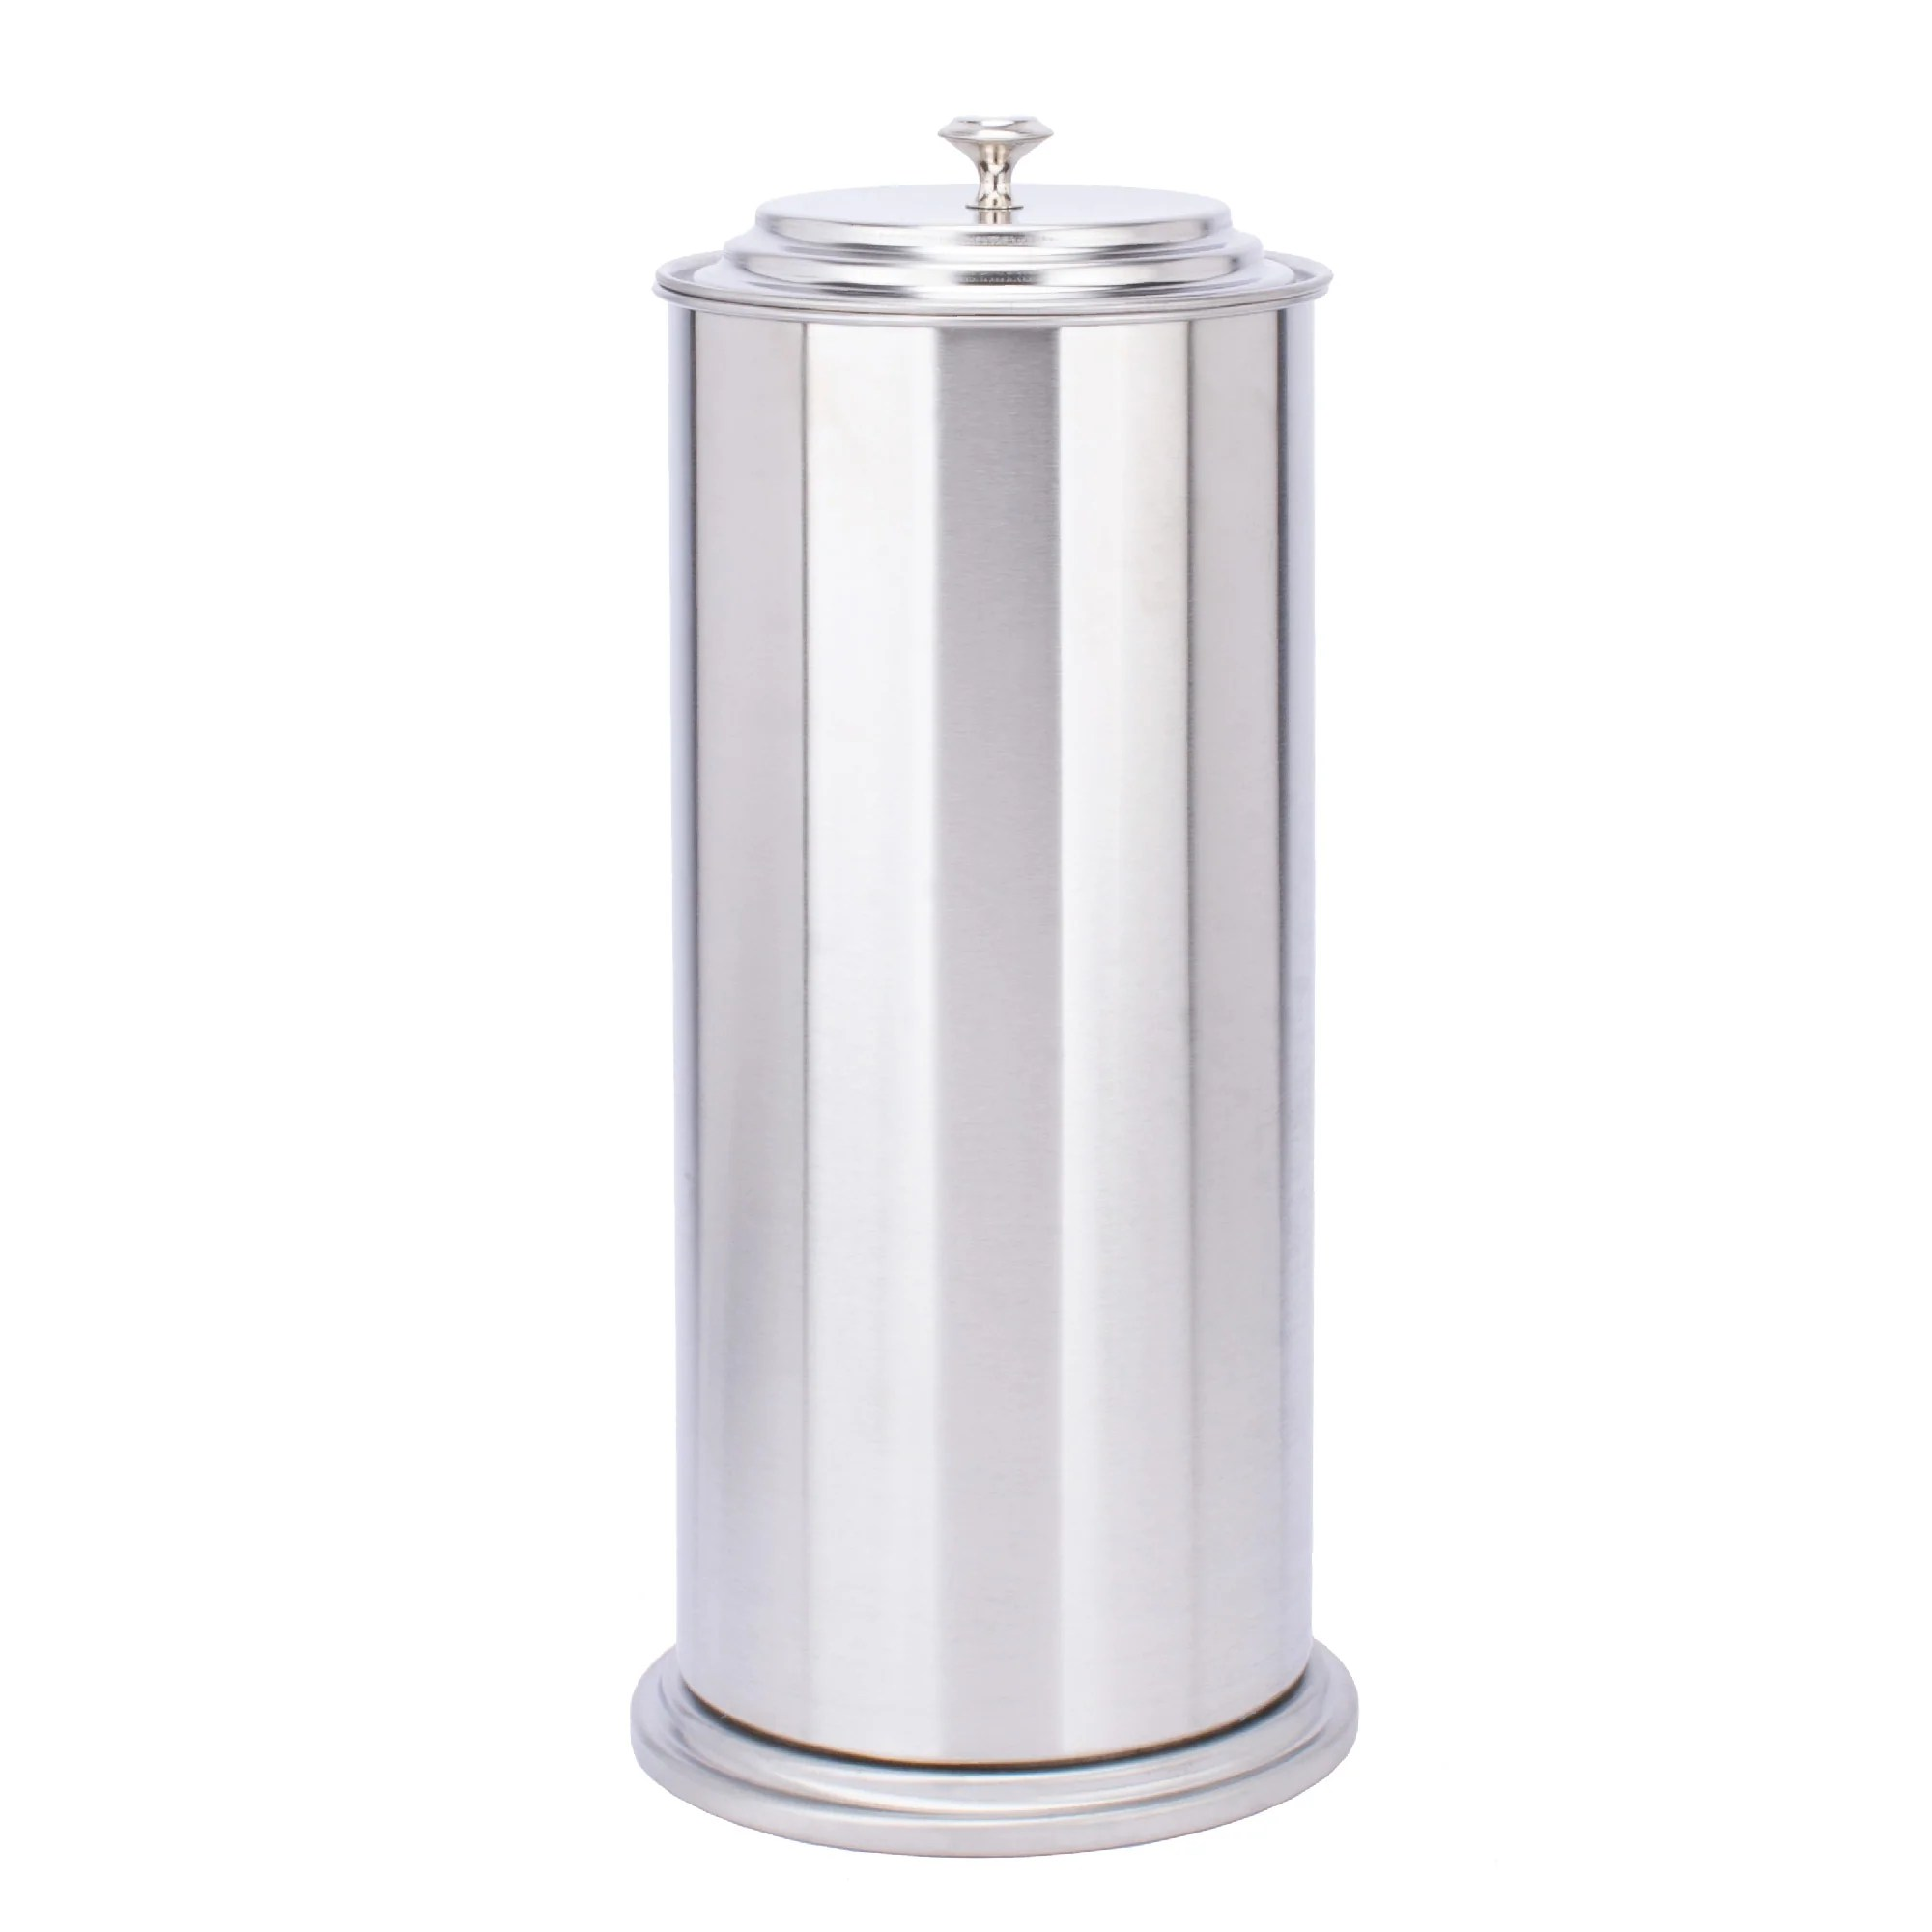 free standing extra large toilet paper holder stainless steel